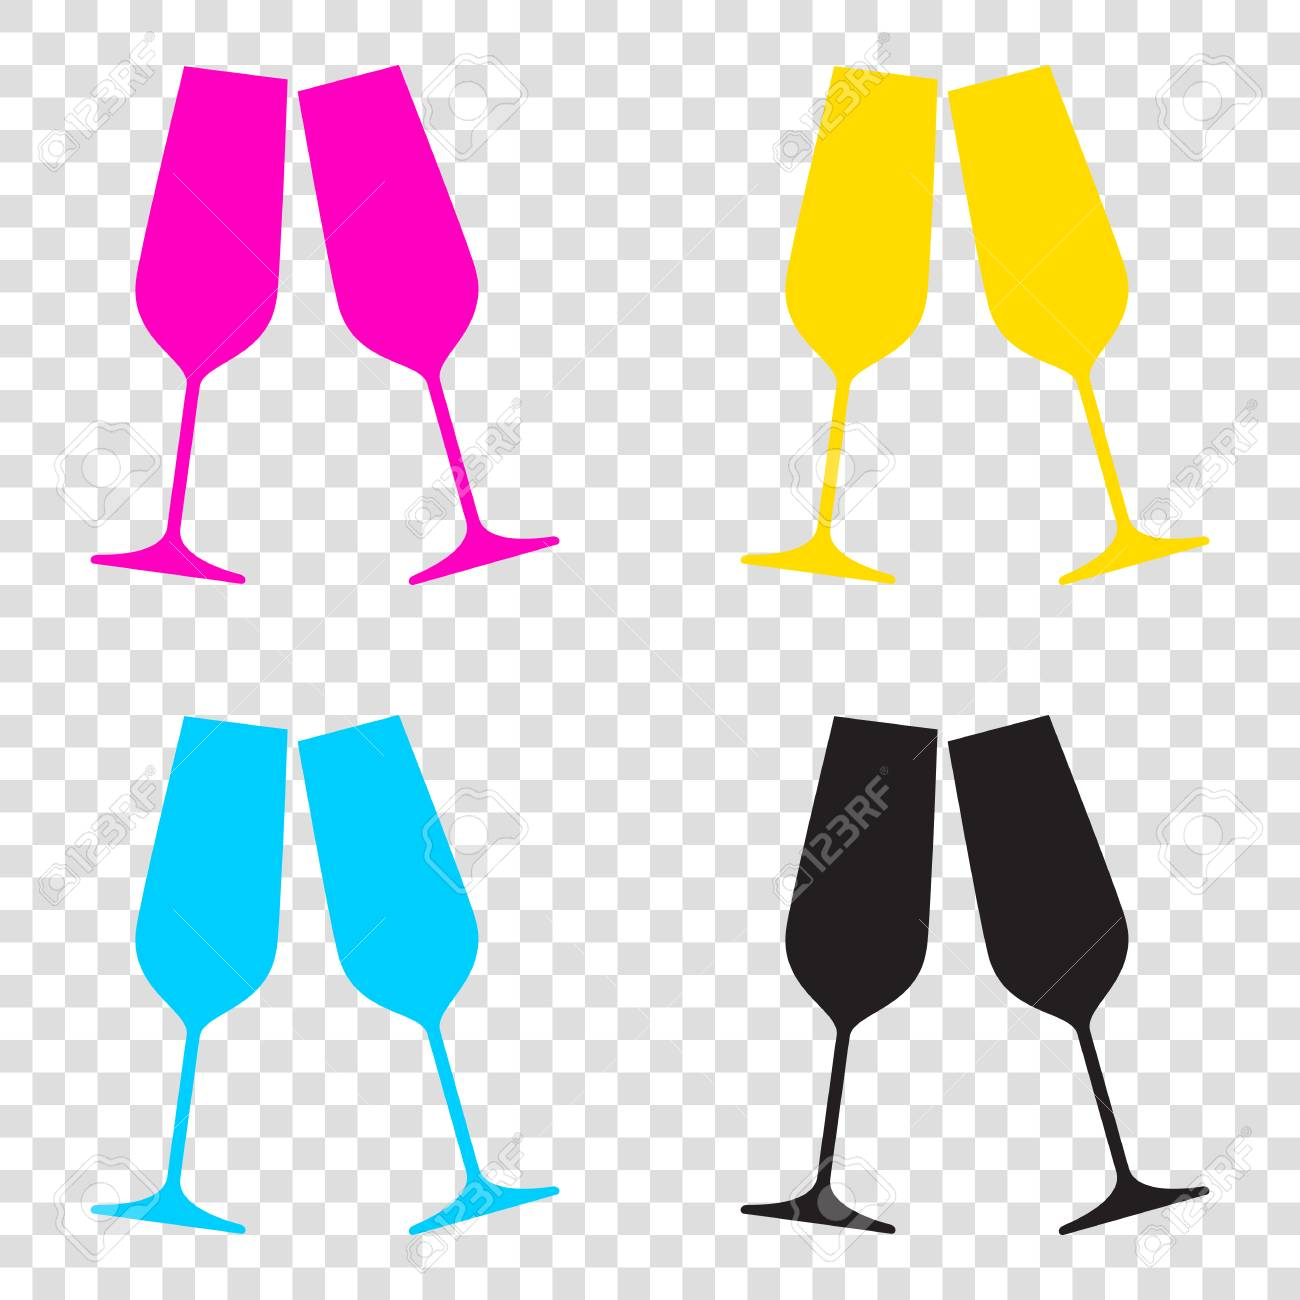 3a8146f06b0b Sparkling champagne glasses. CMYK icons on transparent background. Cyan